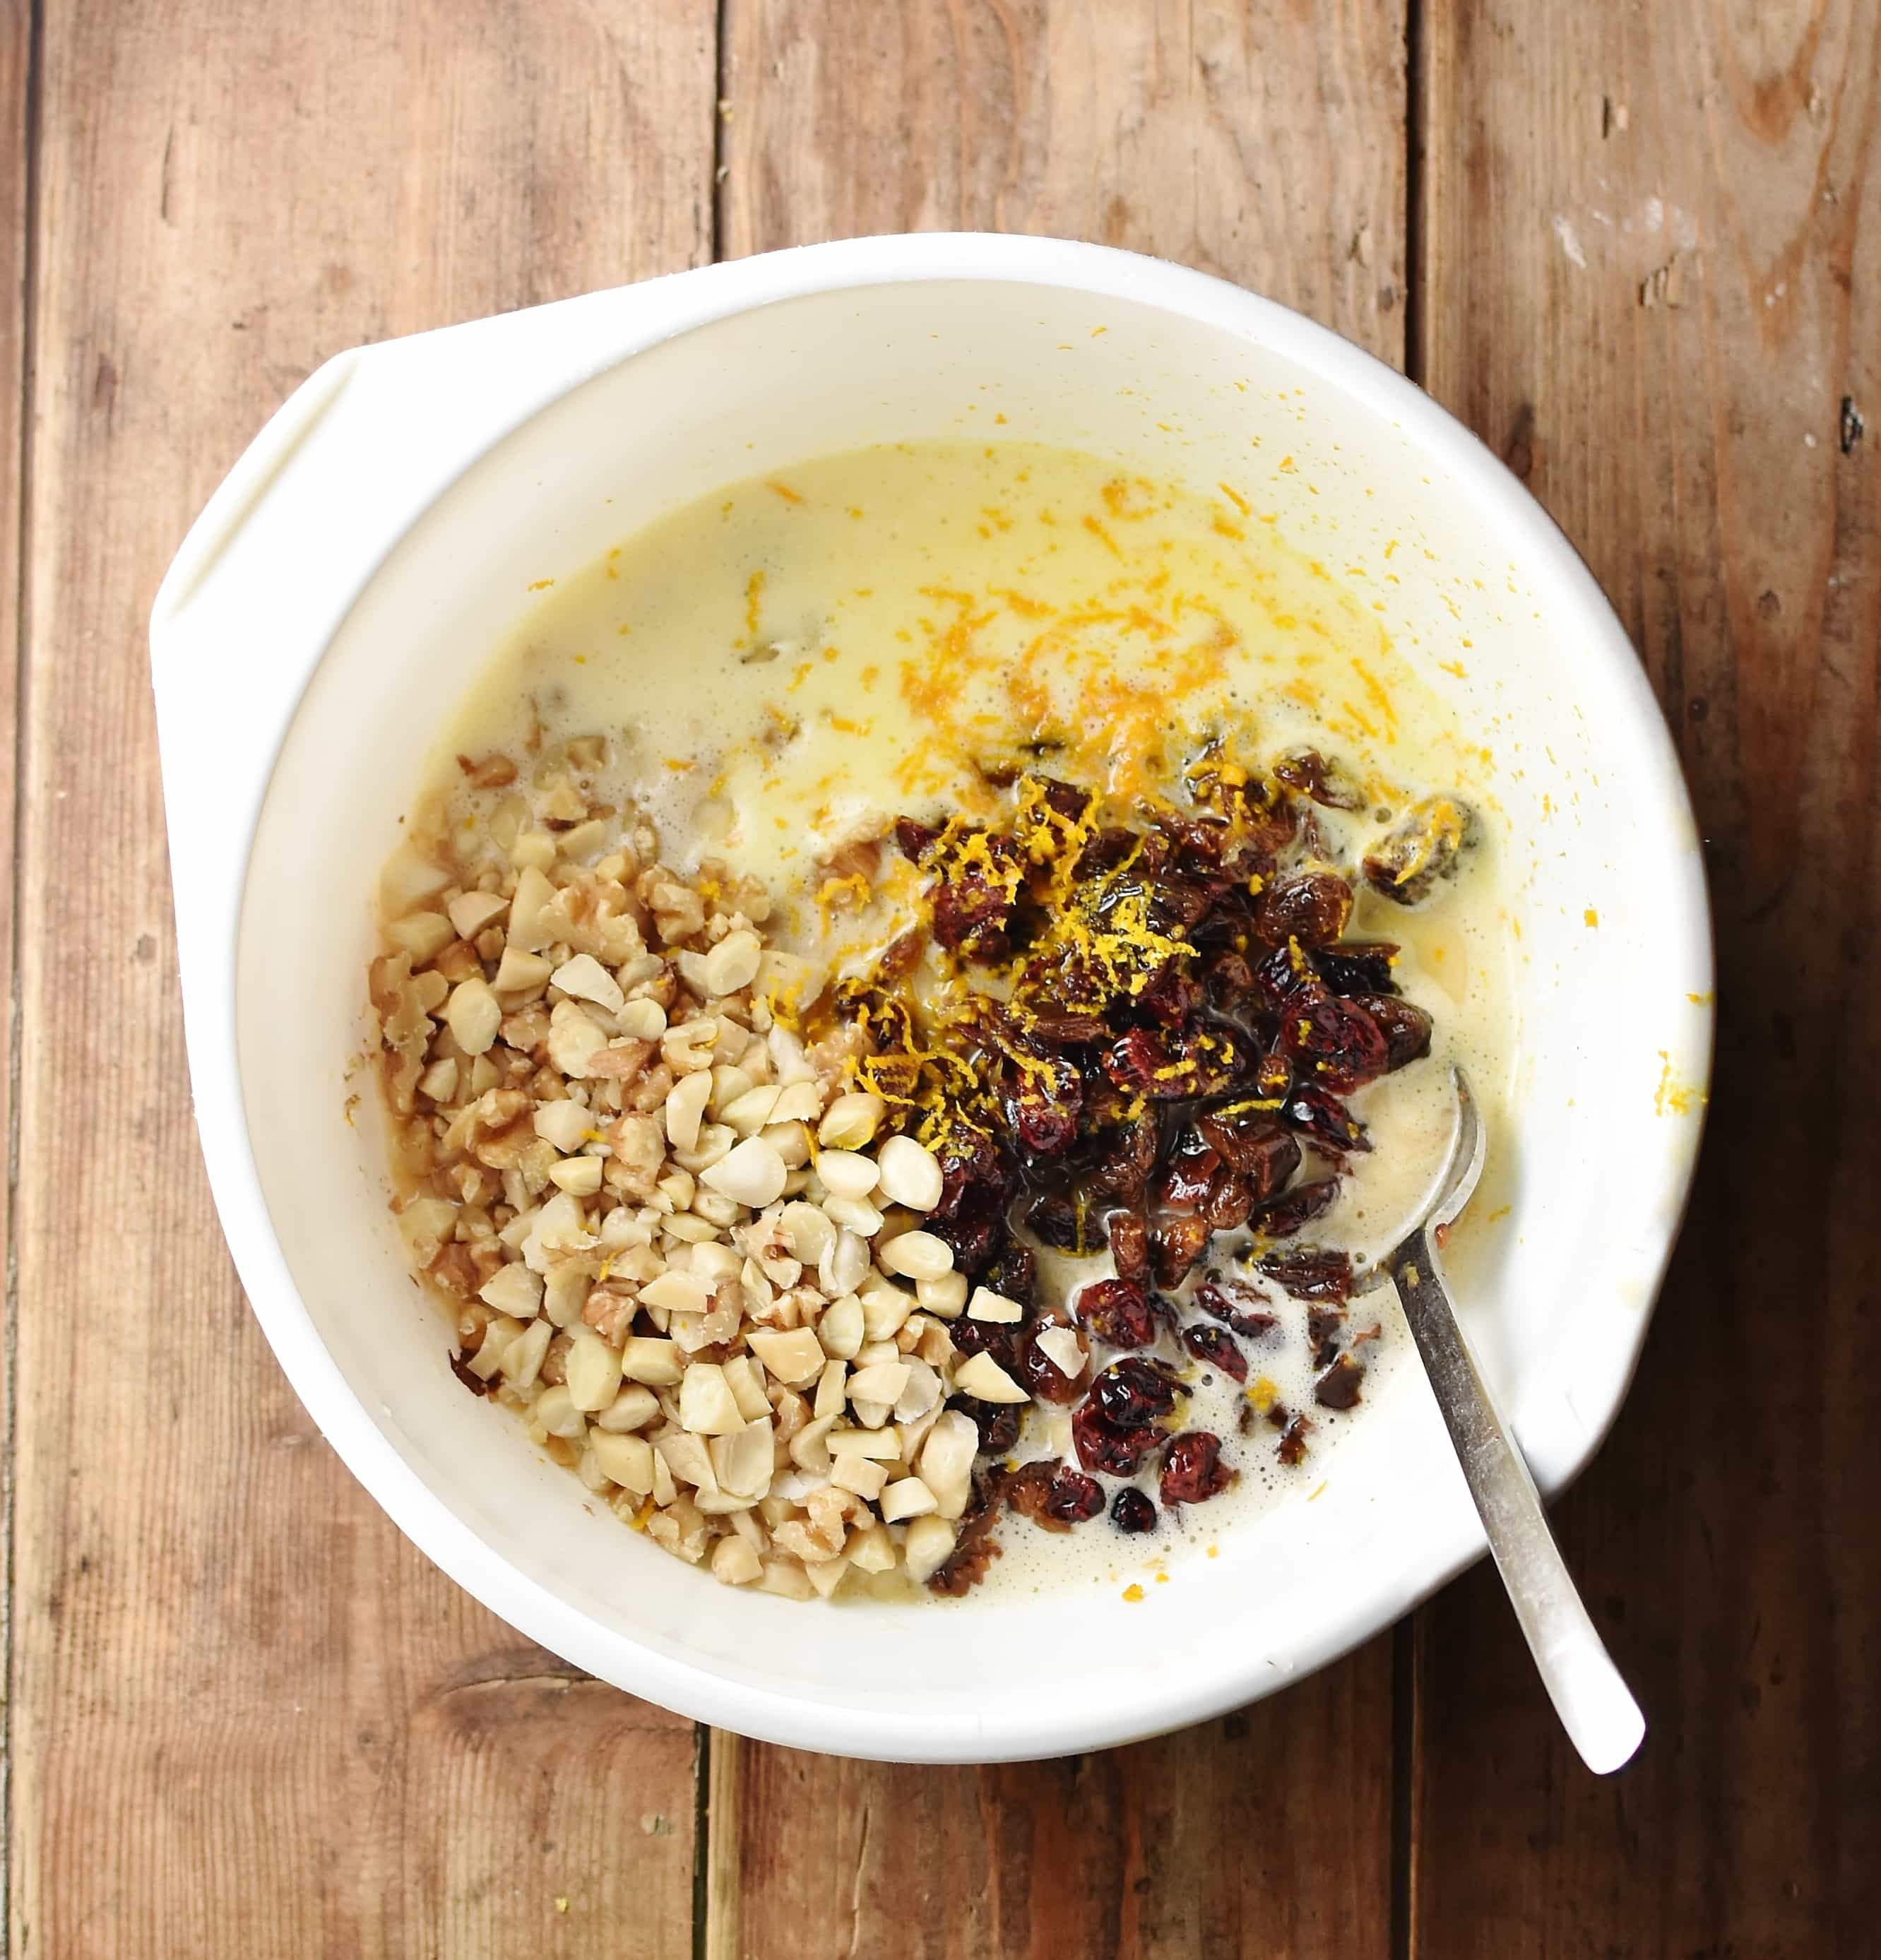 Top down view of nuts, dried fruit, egg mixture and orange zest in large white bowl with spoon.